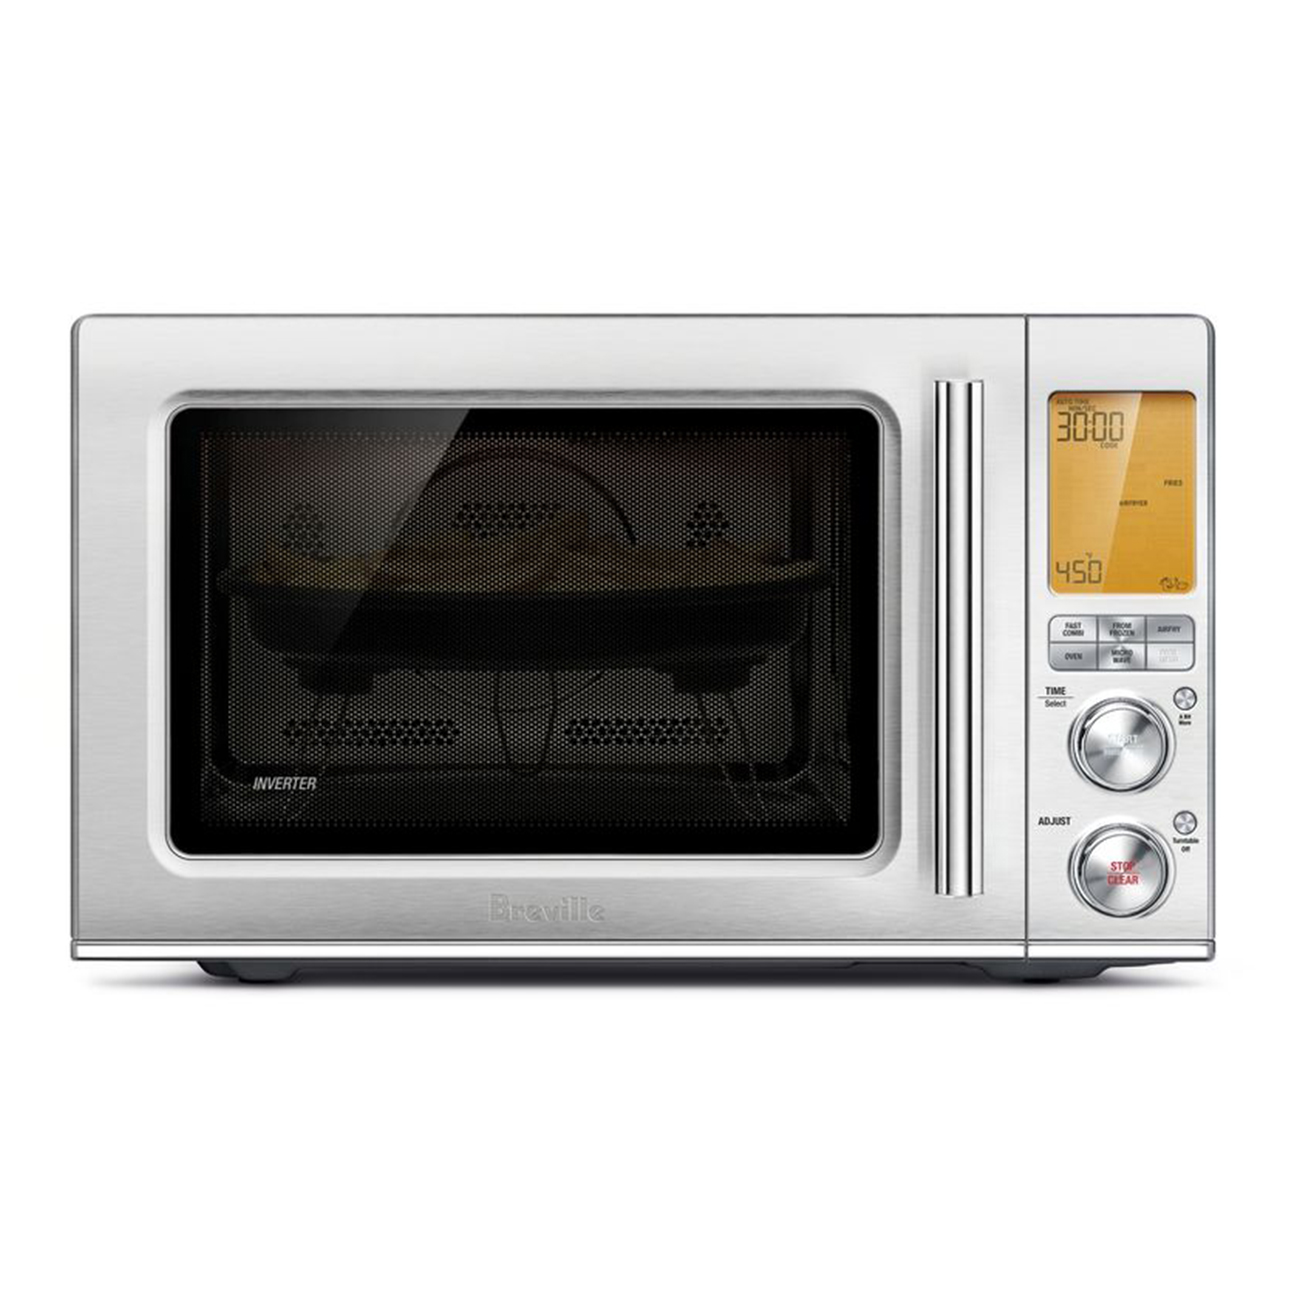 The Combi Wave 3 In 1 Microwave Breville